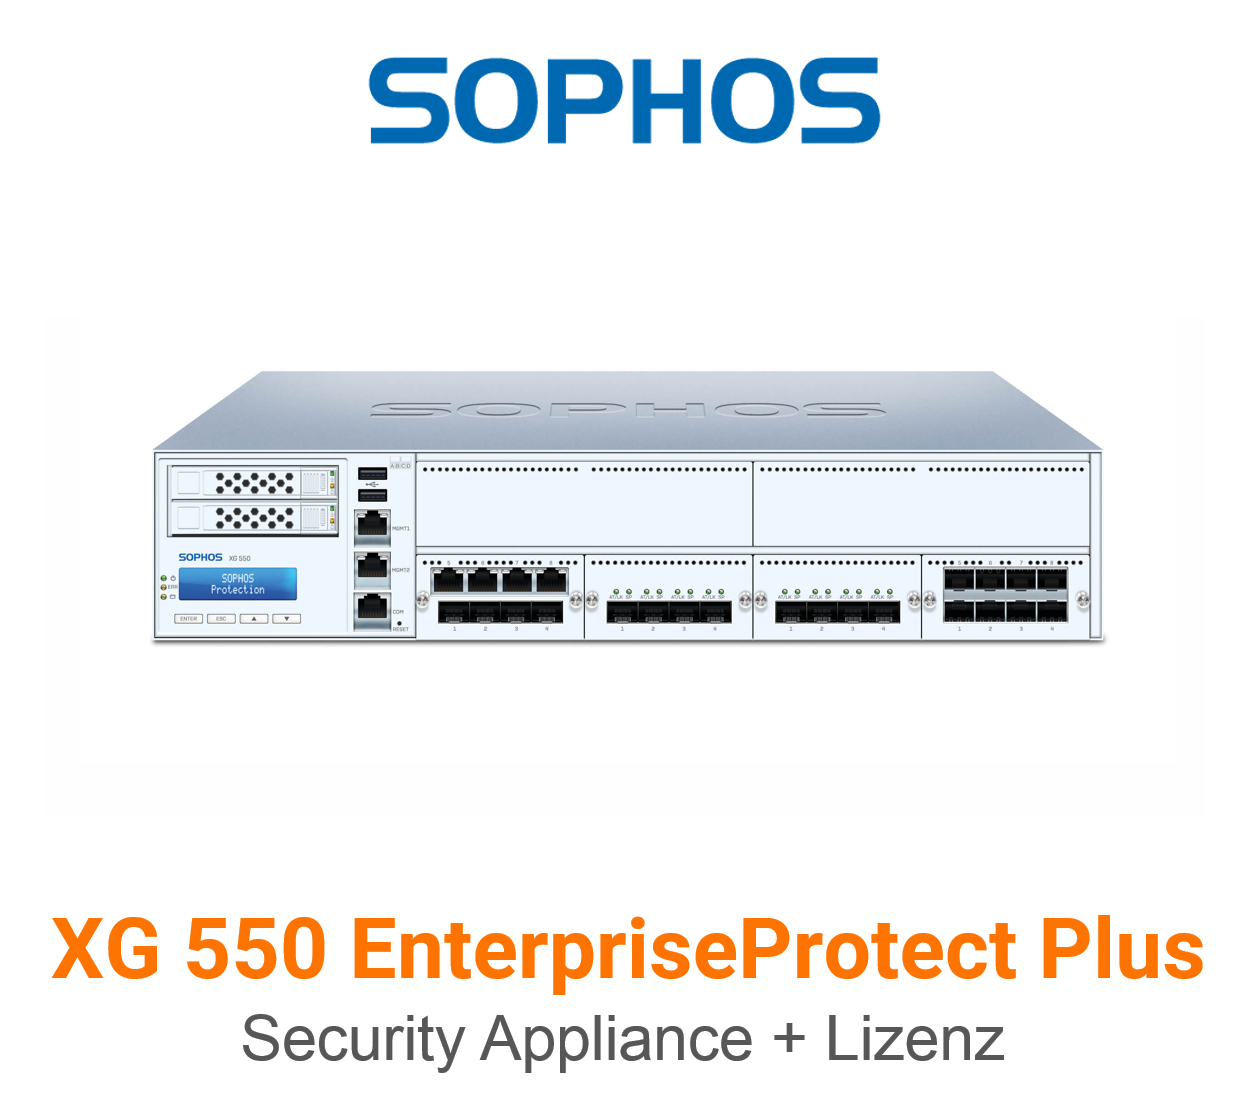 Sophos XG 550 EnterpriseProtect Plus Bundle (Hardware + Lizenz)